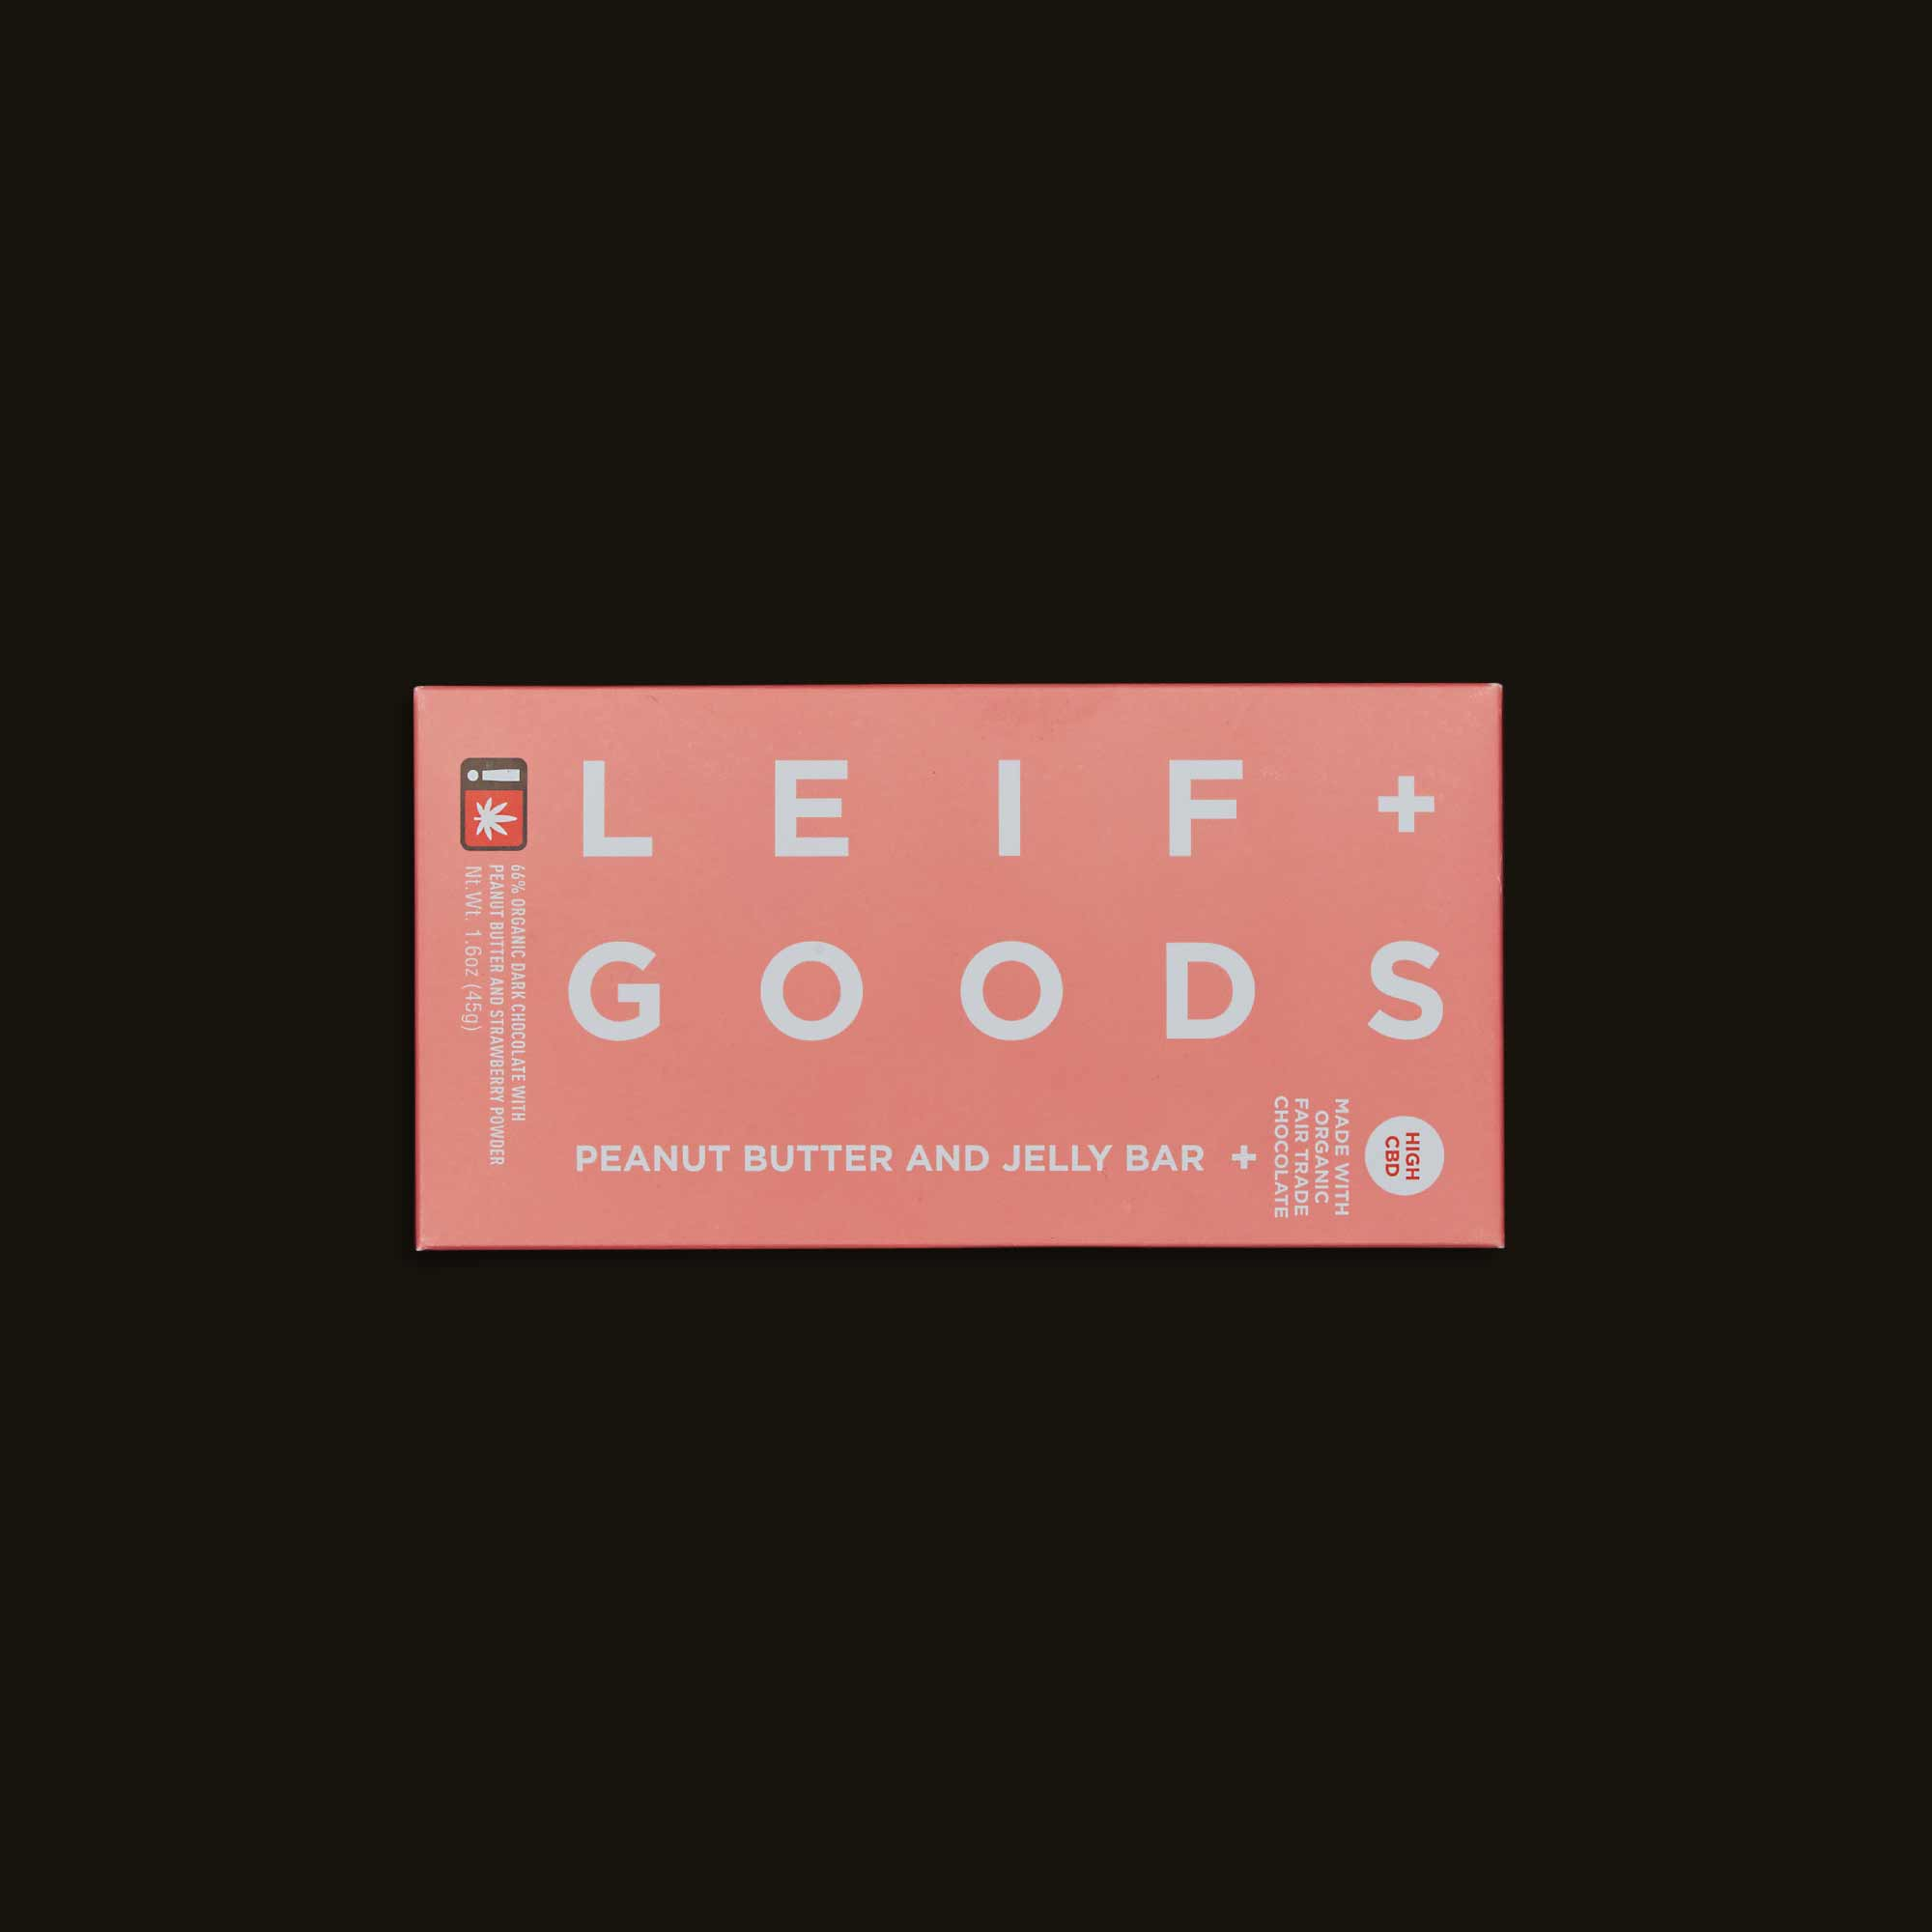 Leif Goods Peanut Butter and Jelly Bar